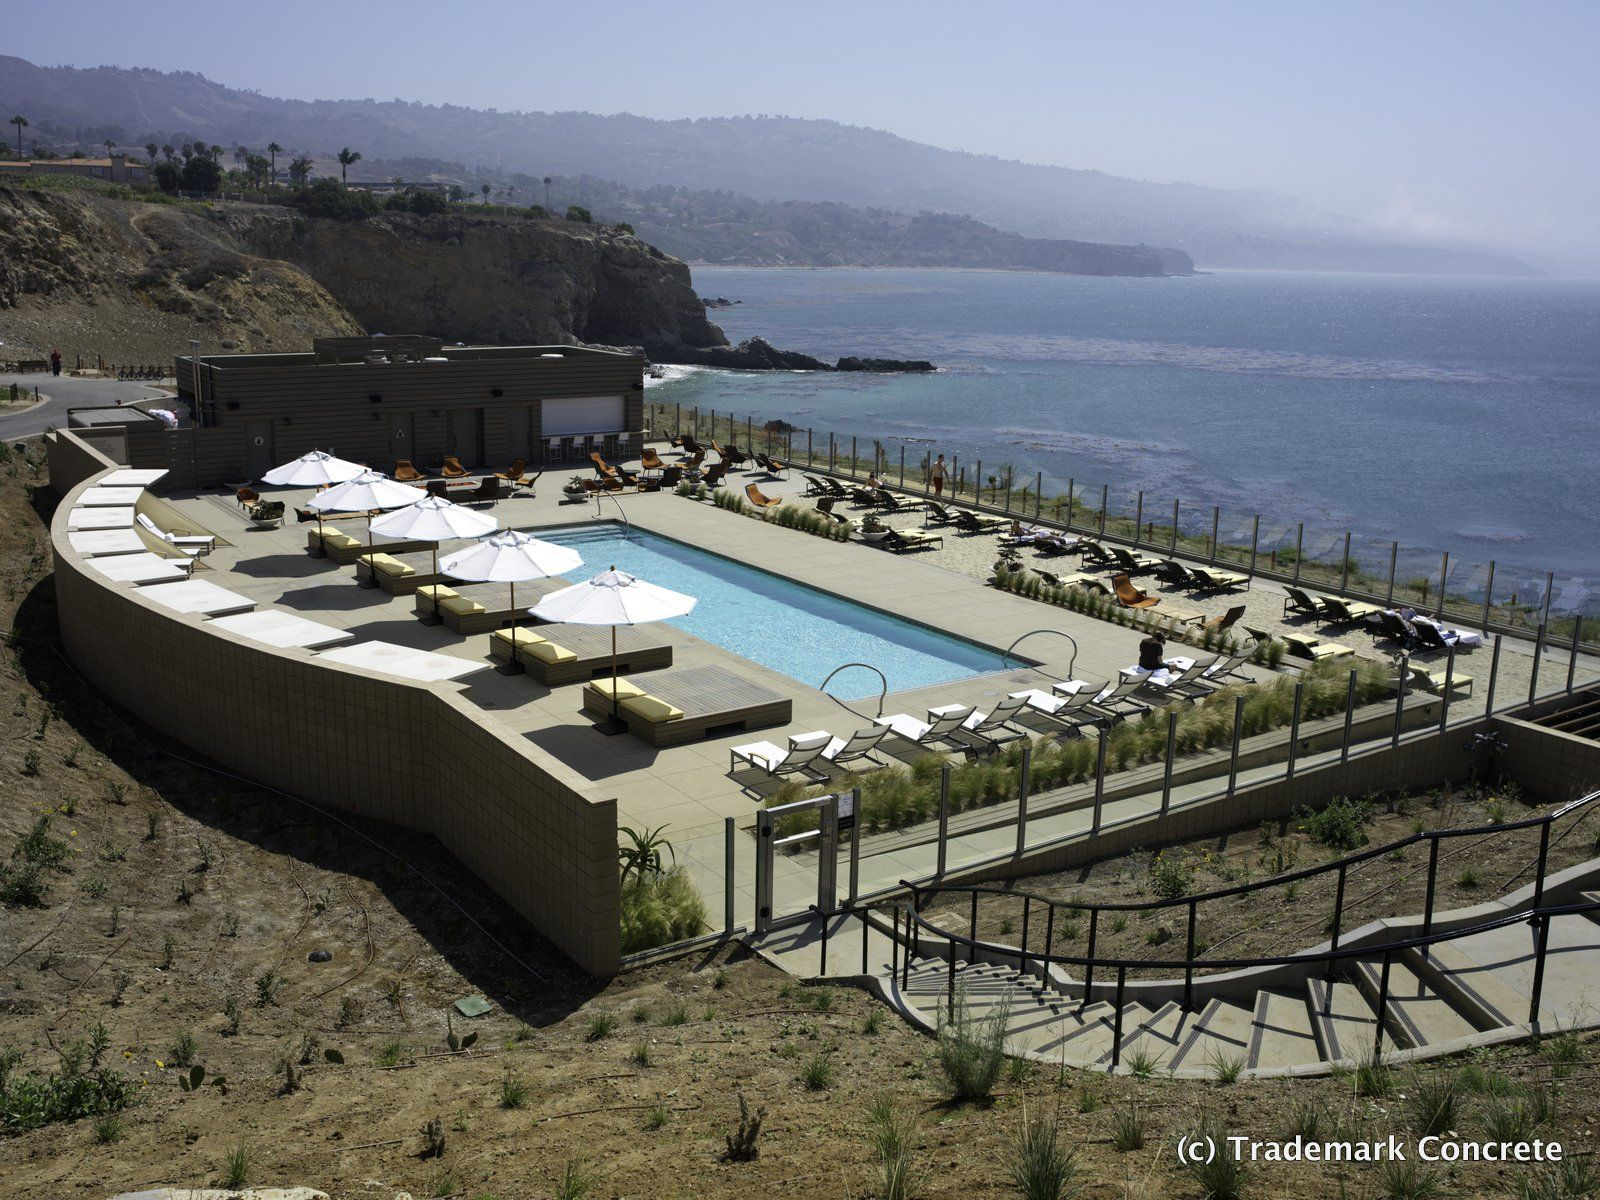 Decorative concrete installed by DCC member Trademark Concrete - Integrally colored concrete pool deck with a sand finish at the Terranea Resort in Rancho Palos Verdes